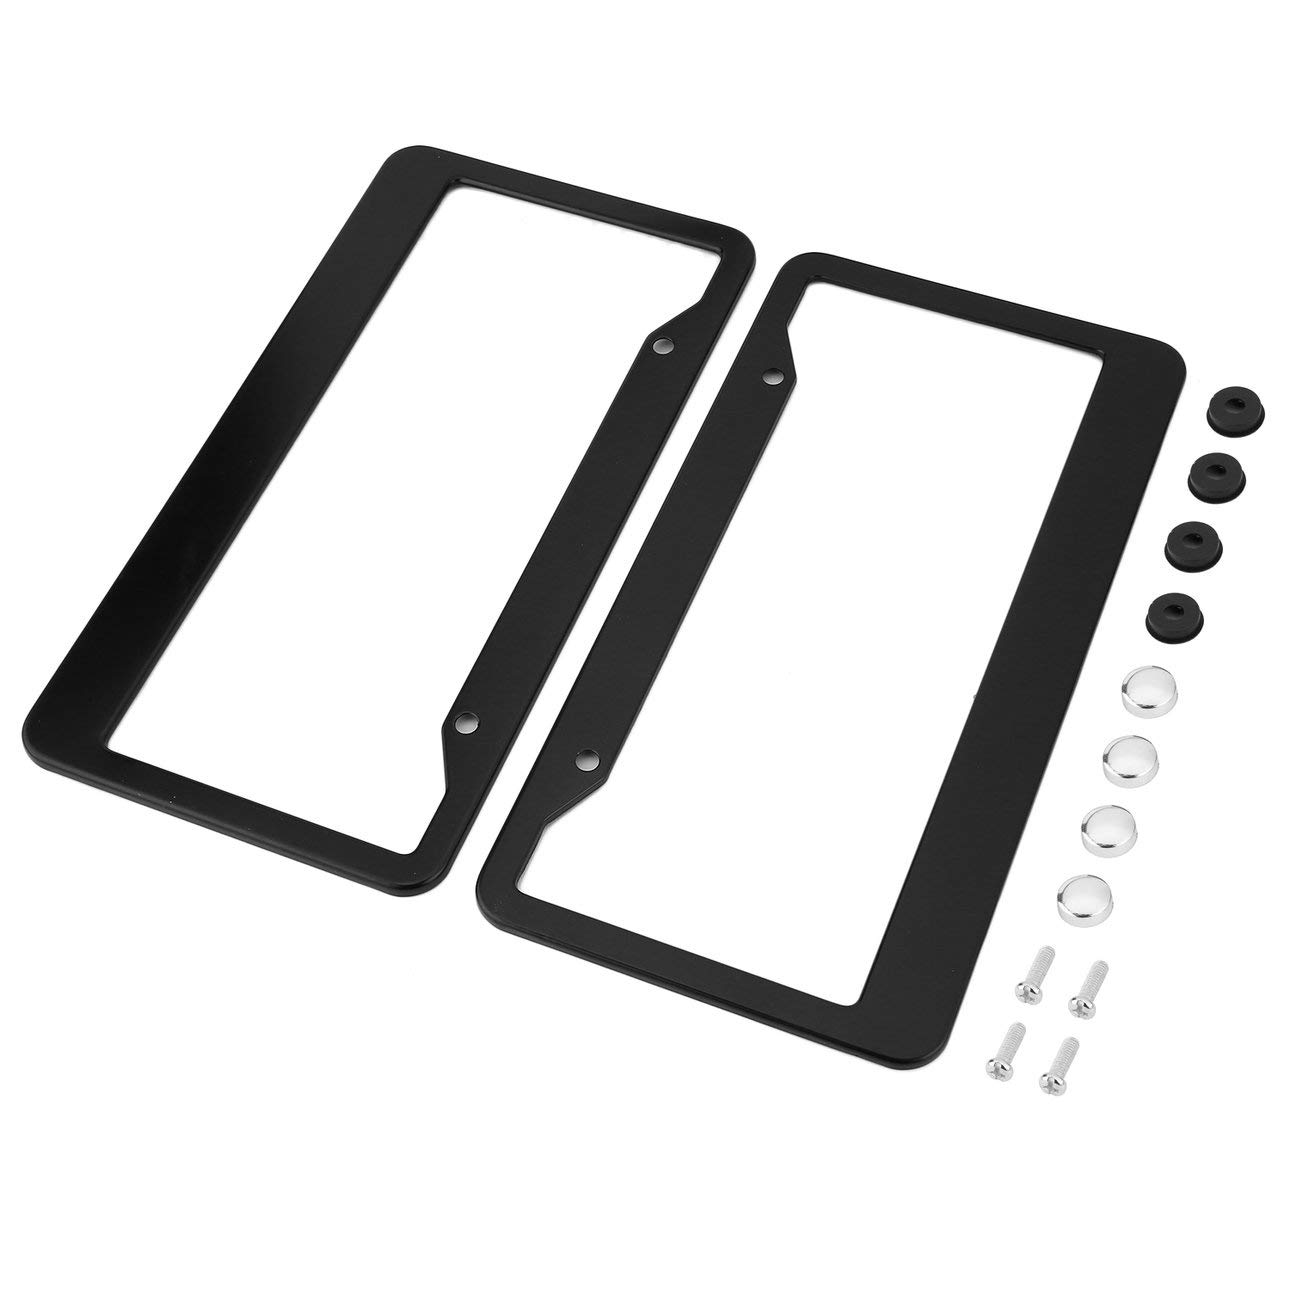 2pcs Black Aluminum Alloy Car Auto Vehicles License Plate Frame Tag Cover Holder with Screw Caps Car Styling Black